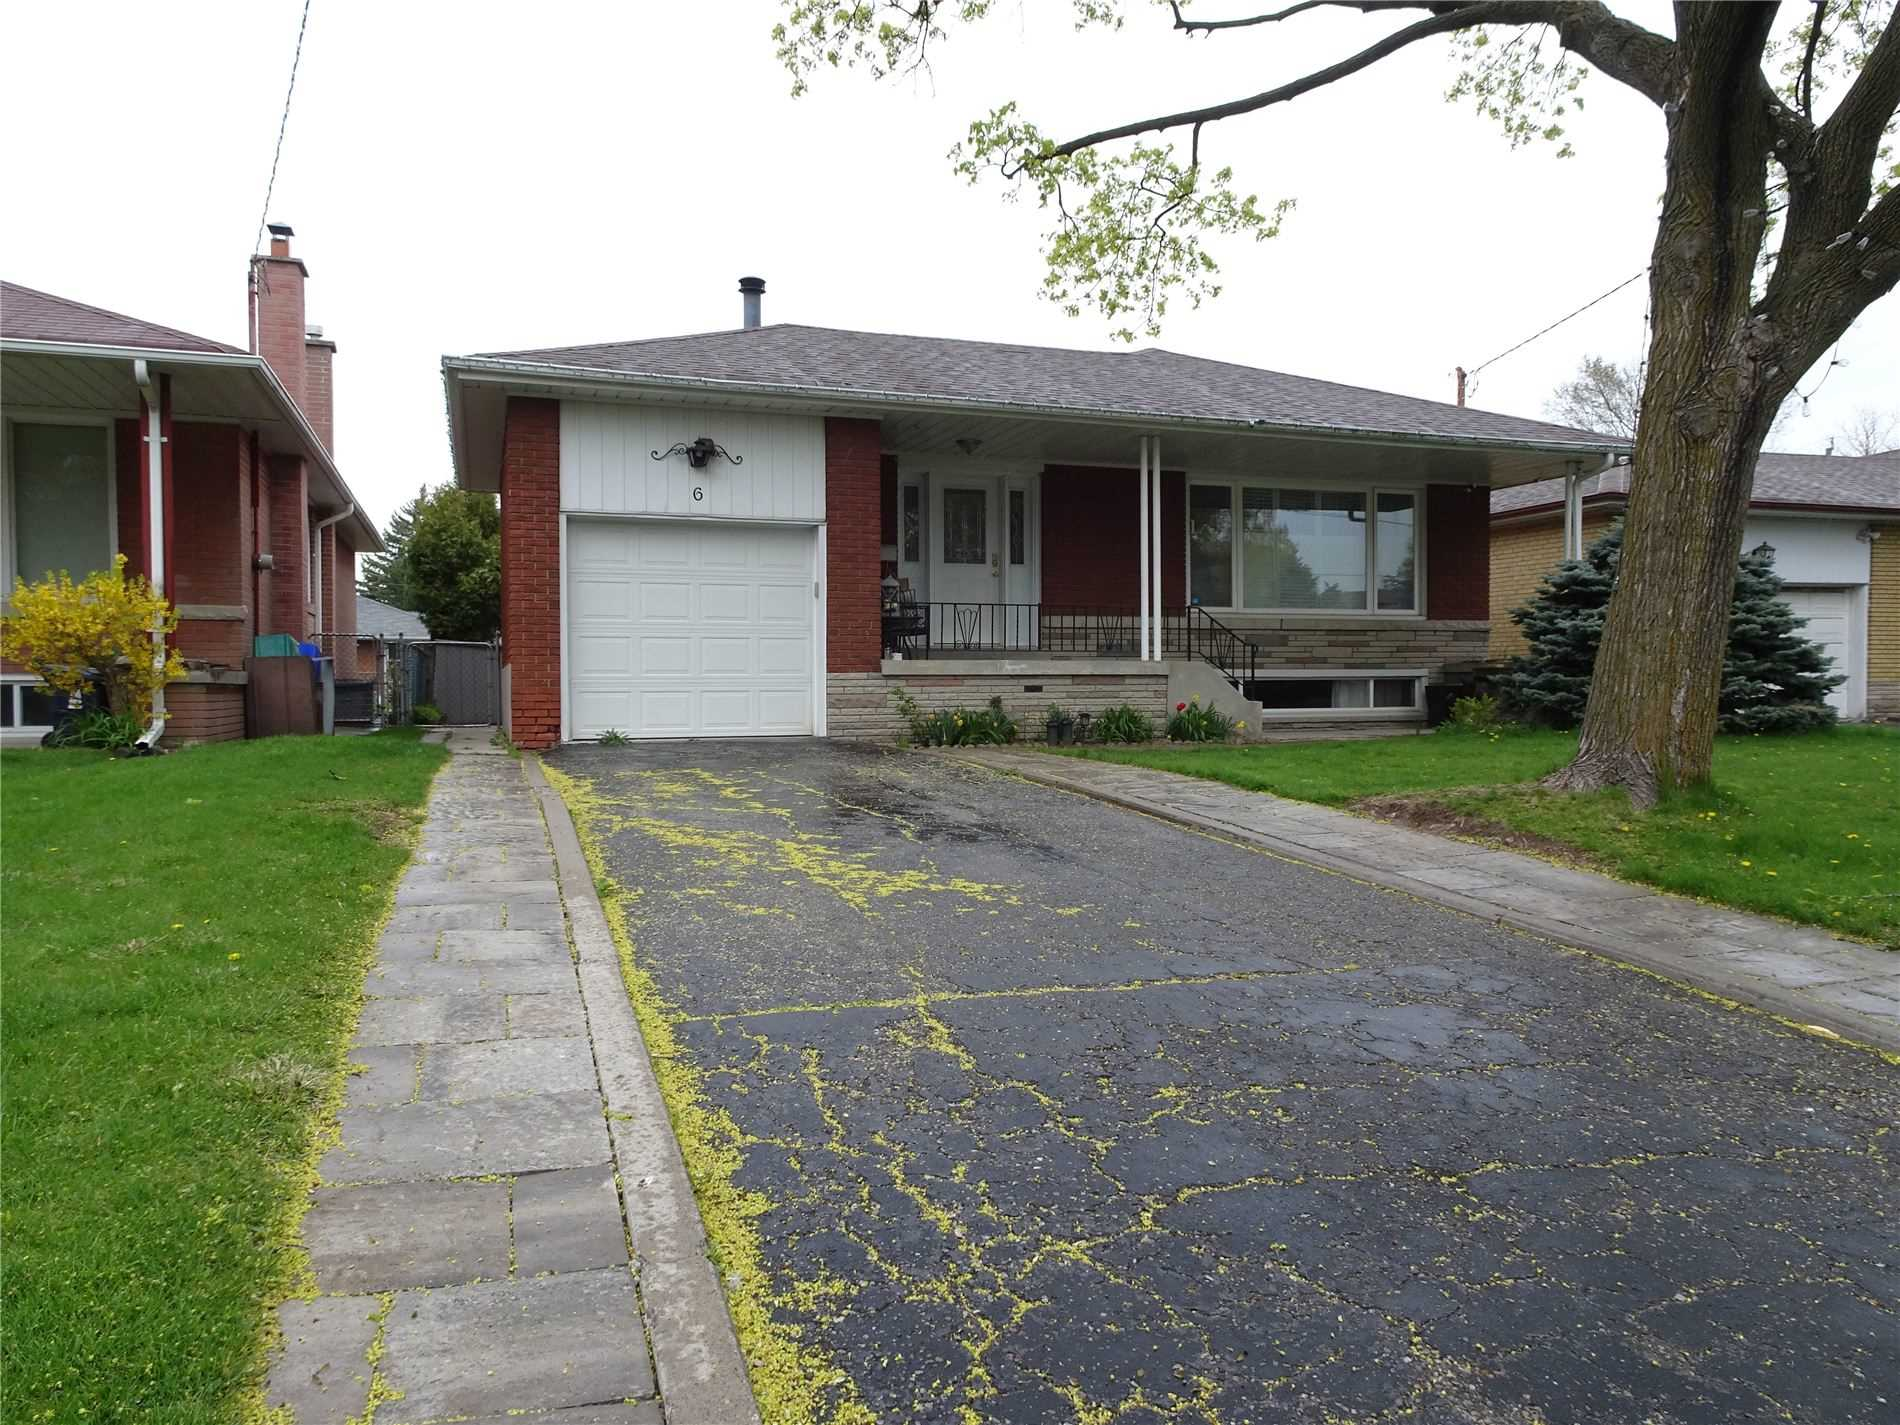 Image 1 of 9 showing inside of 3 Bedroom Detached Bungalow for Lease at 6 Mullet Rd, Toronto M2M2A6